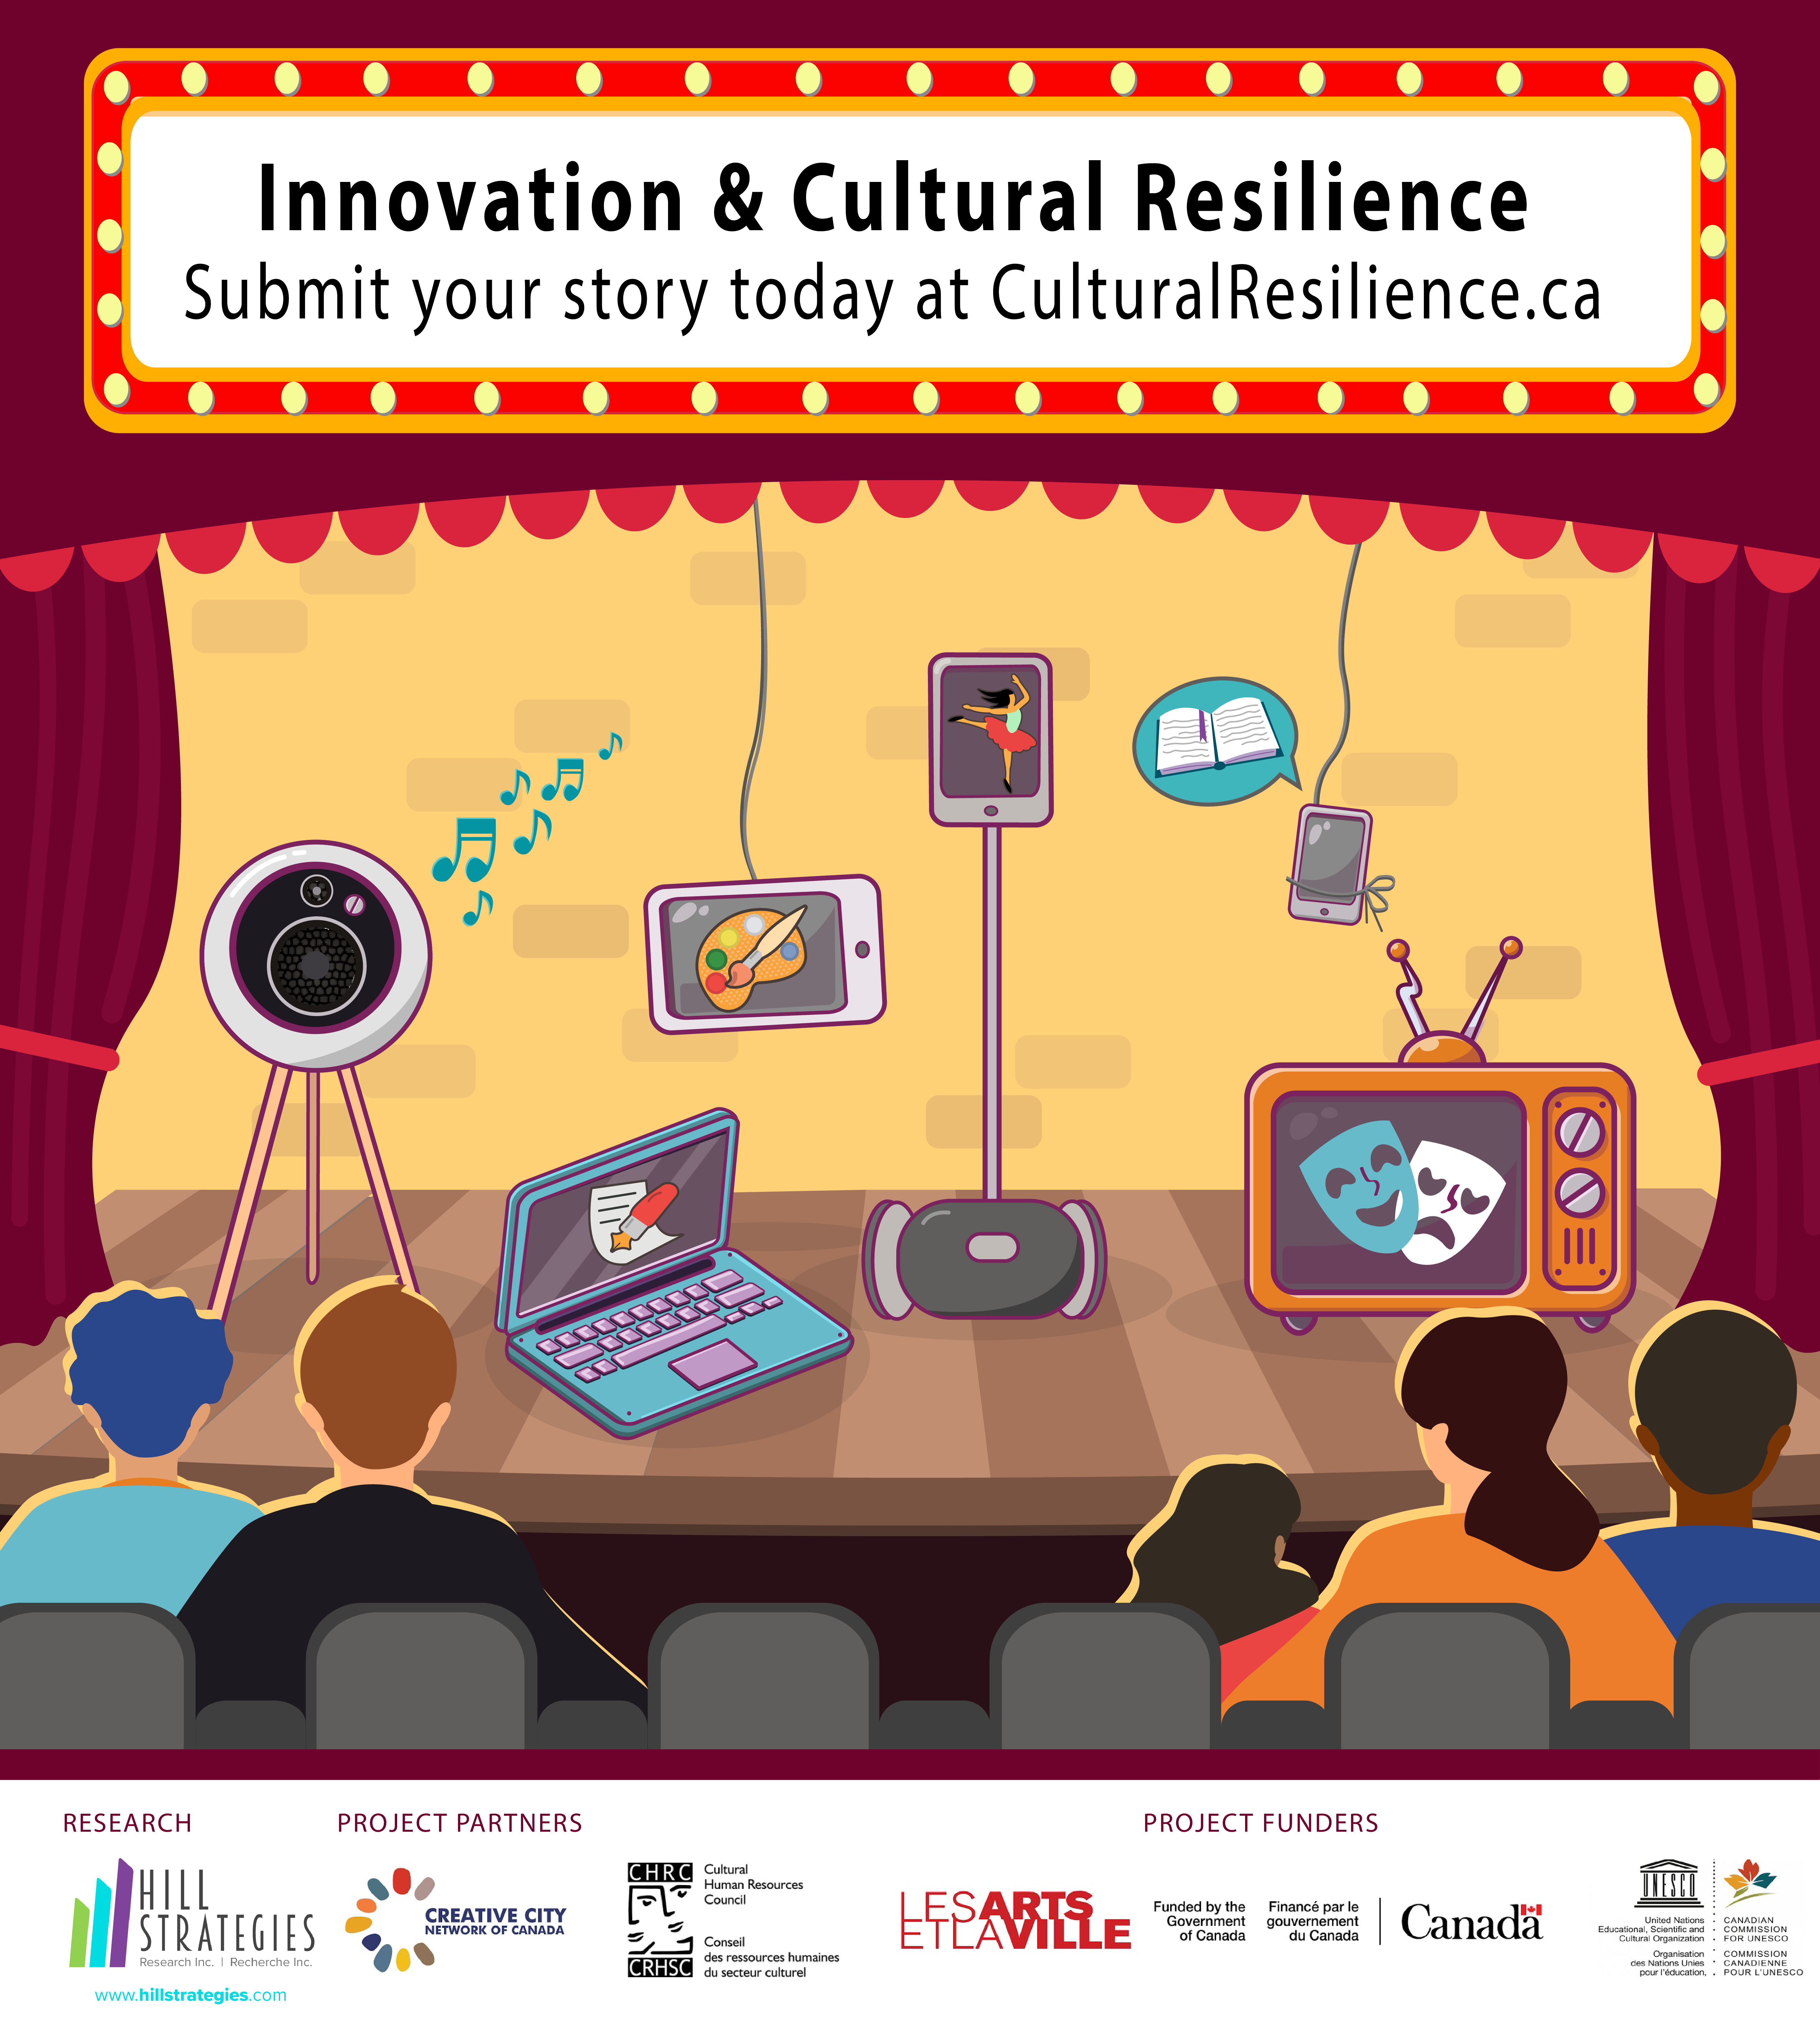 """Image: Marquee reads """"Innovation & Cultural Resilience. Submit your story today at http://CulturalResilience.ca."""" Electronic devices on stage play cultural works, with five people watching."""